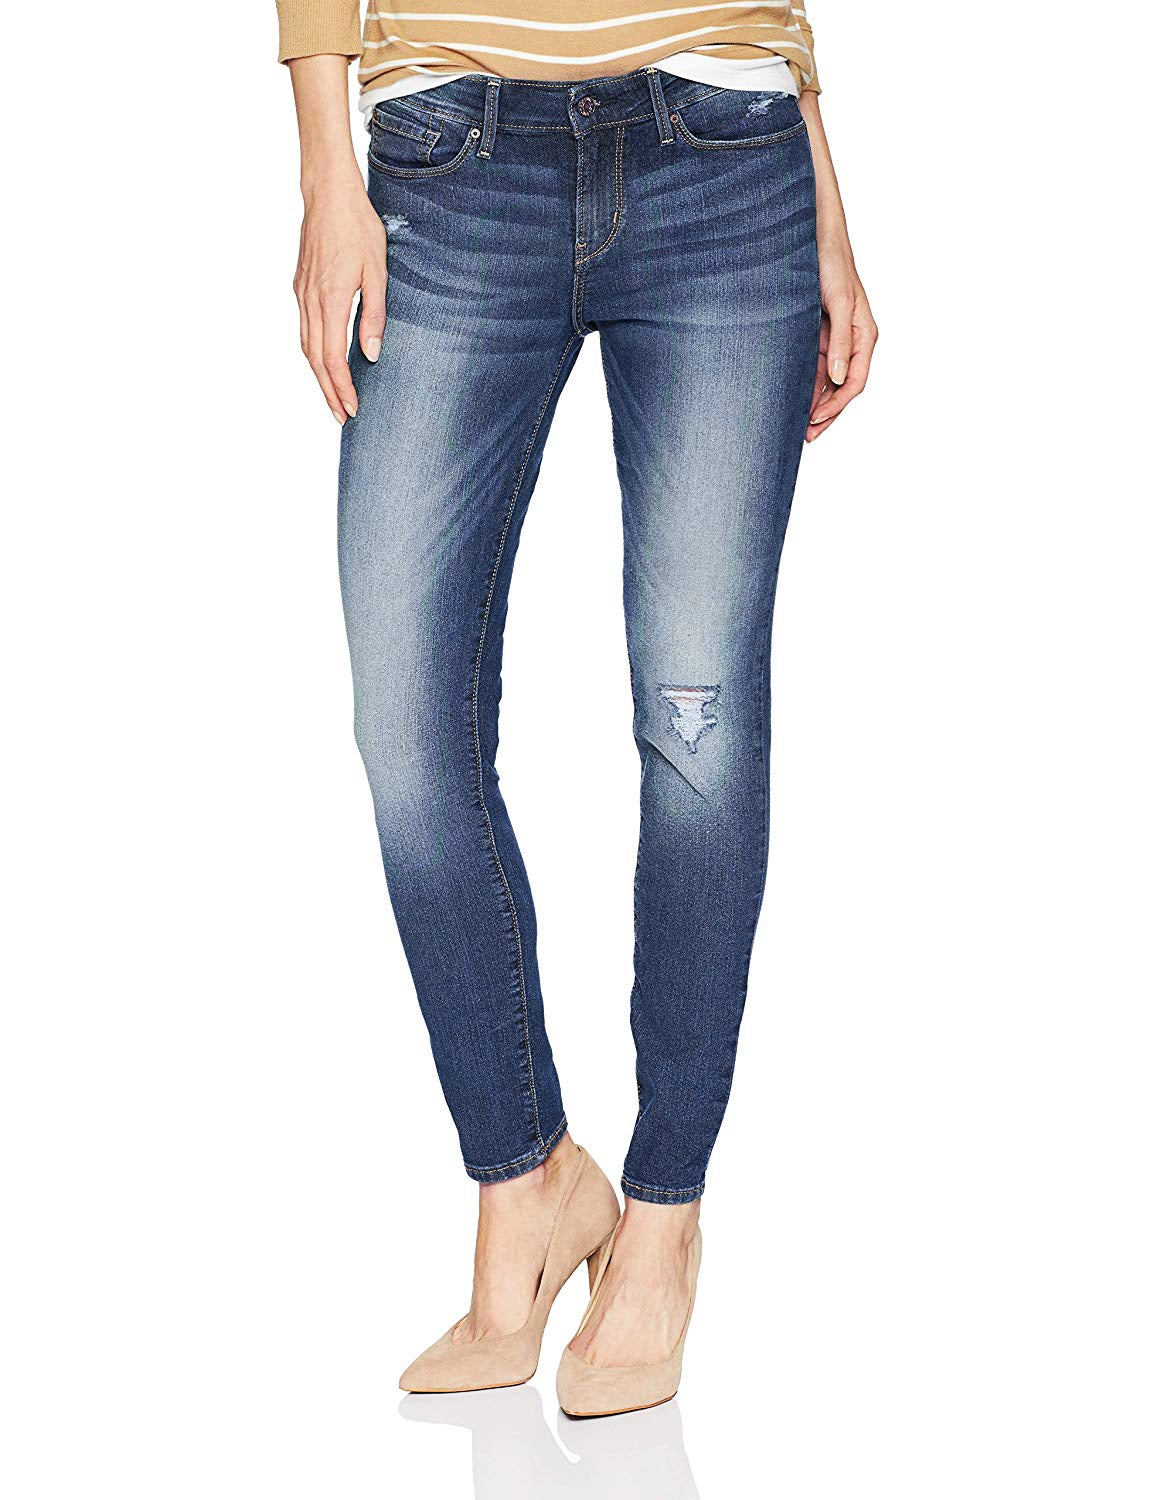 Levi's Signature Gold By Levi Strauss Skinny Distressed Stretch Jeans